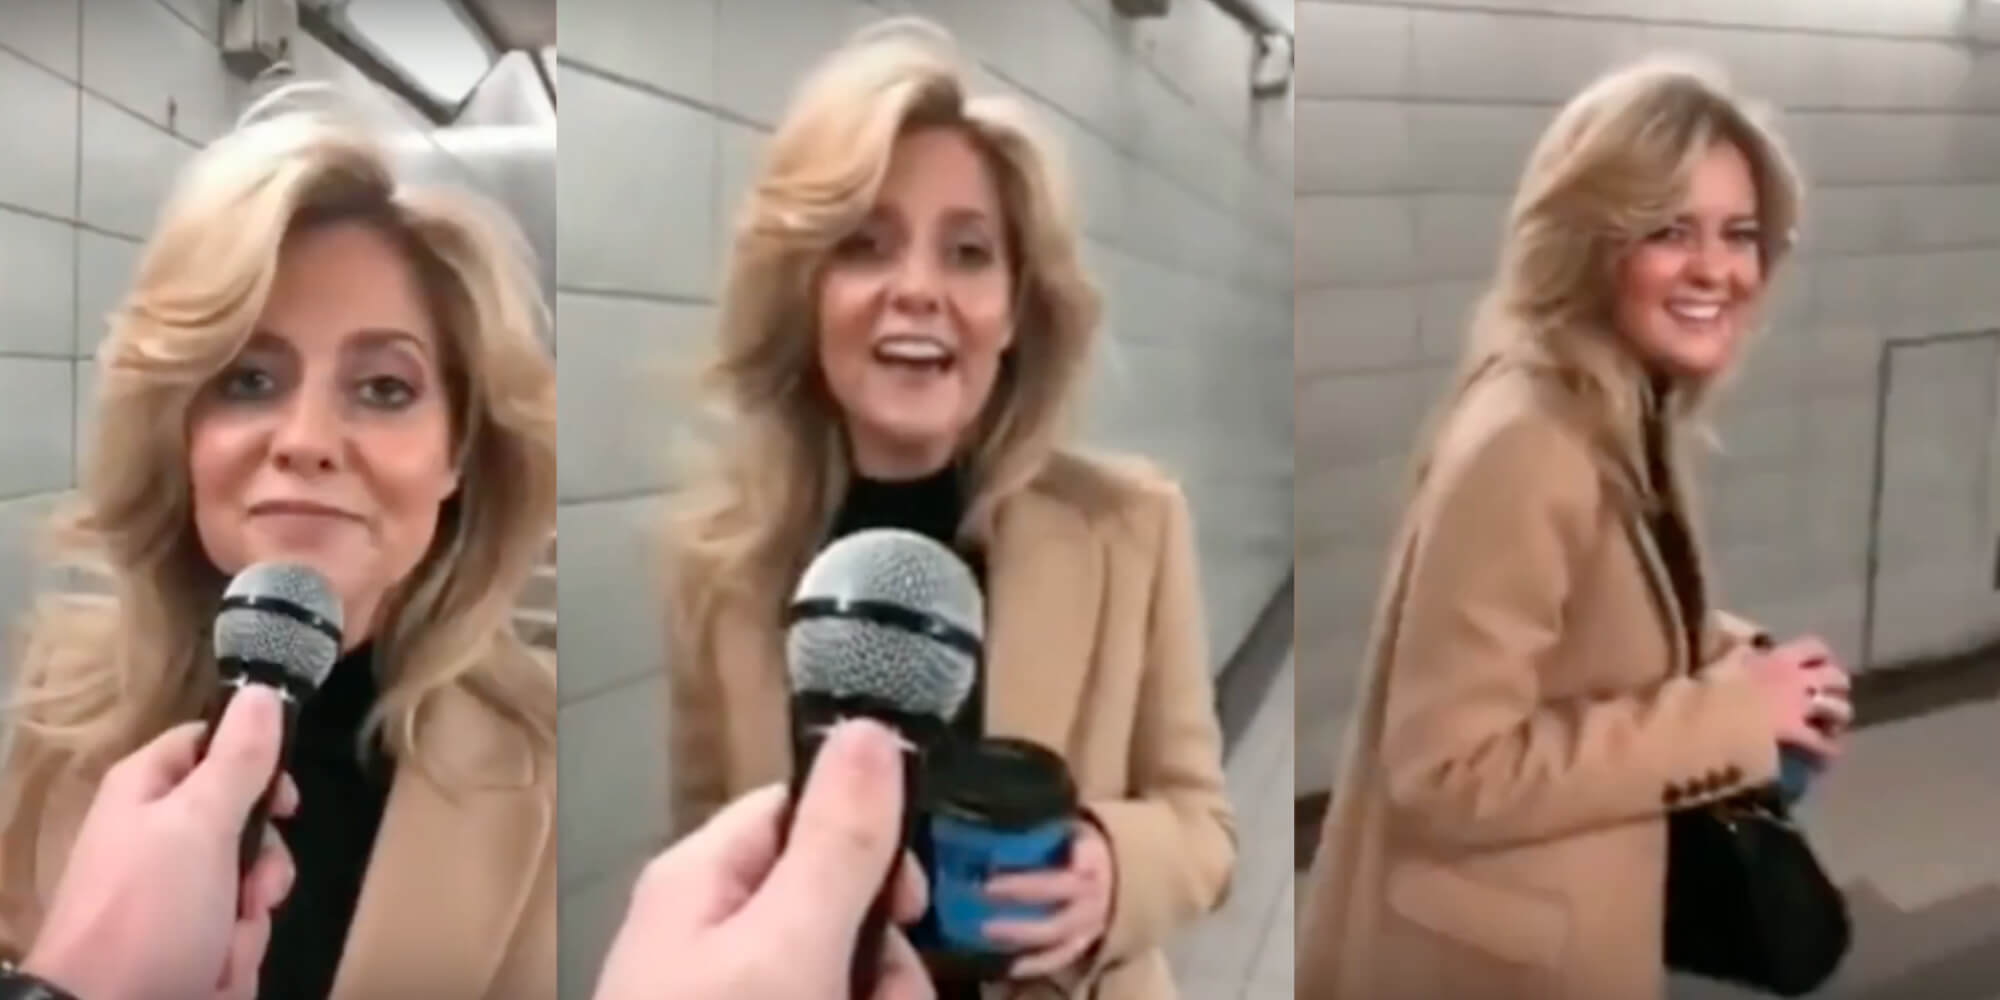 Gifted straphanger hits big after belting out Lady Gaga's 'Shallow' [Video]